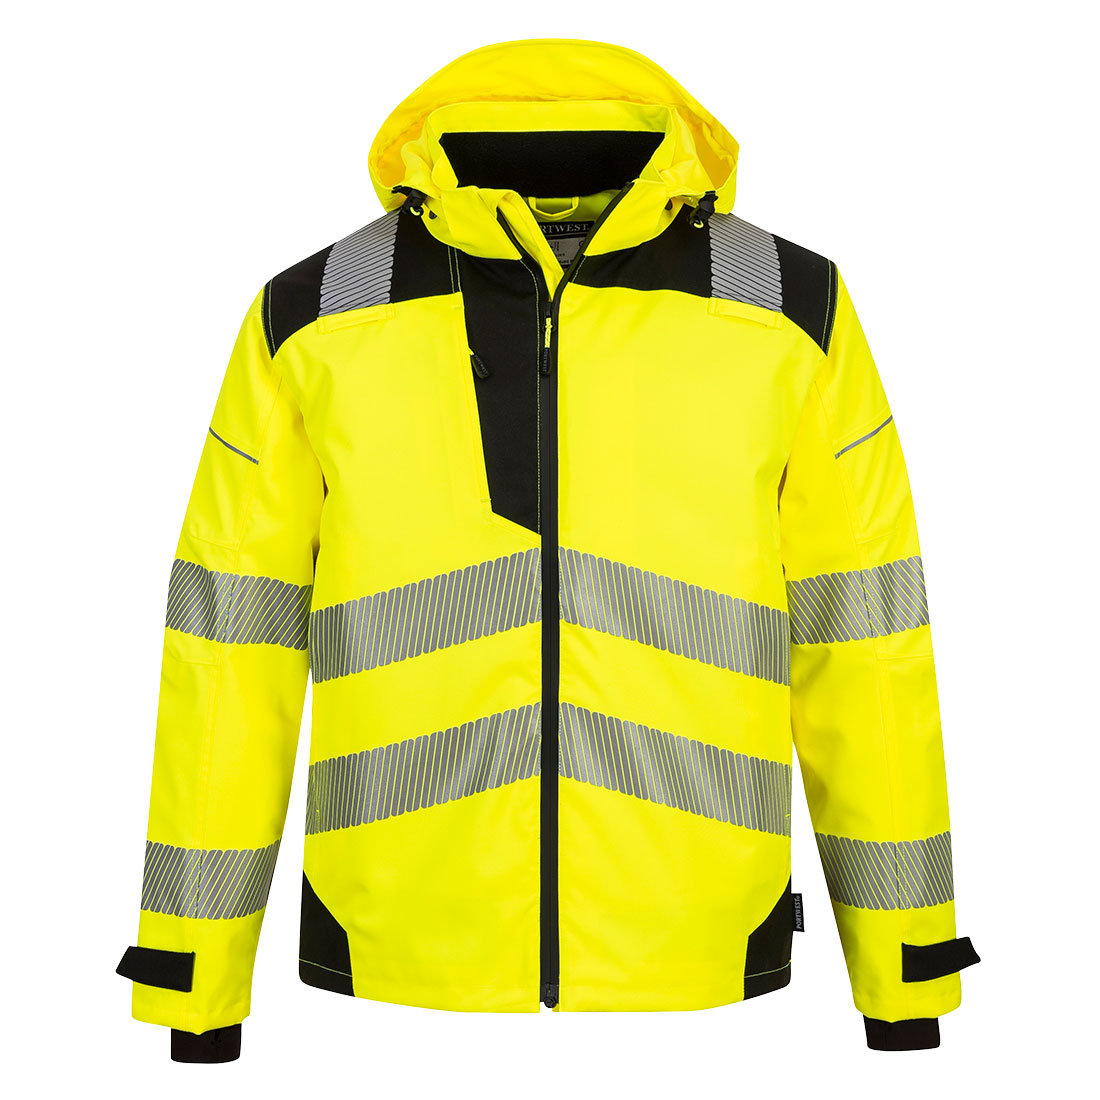 PW3 Extreme Breathable Rain Jacket - Redrok Workwear Centre Plymouth